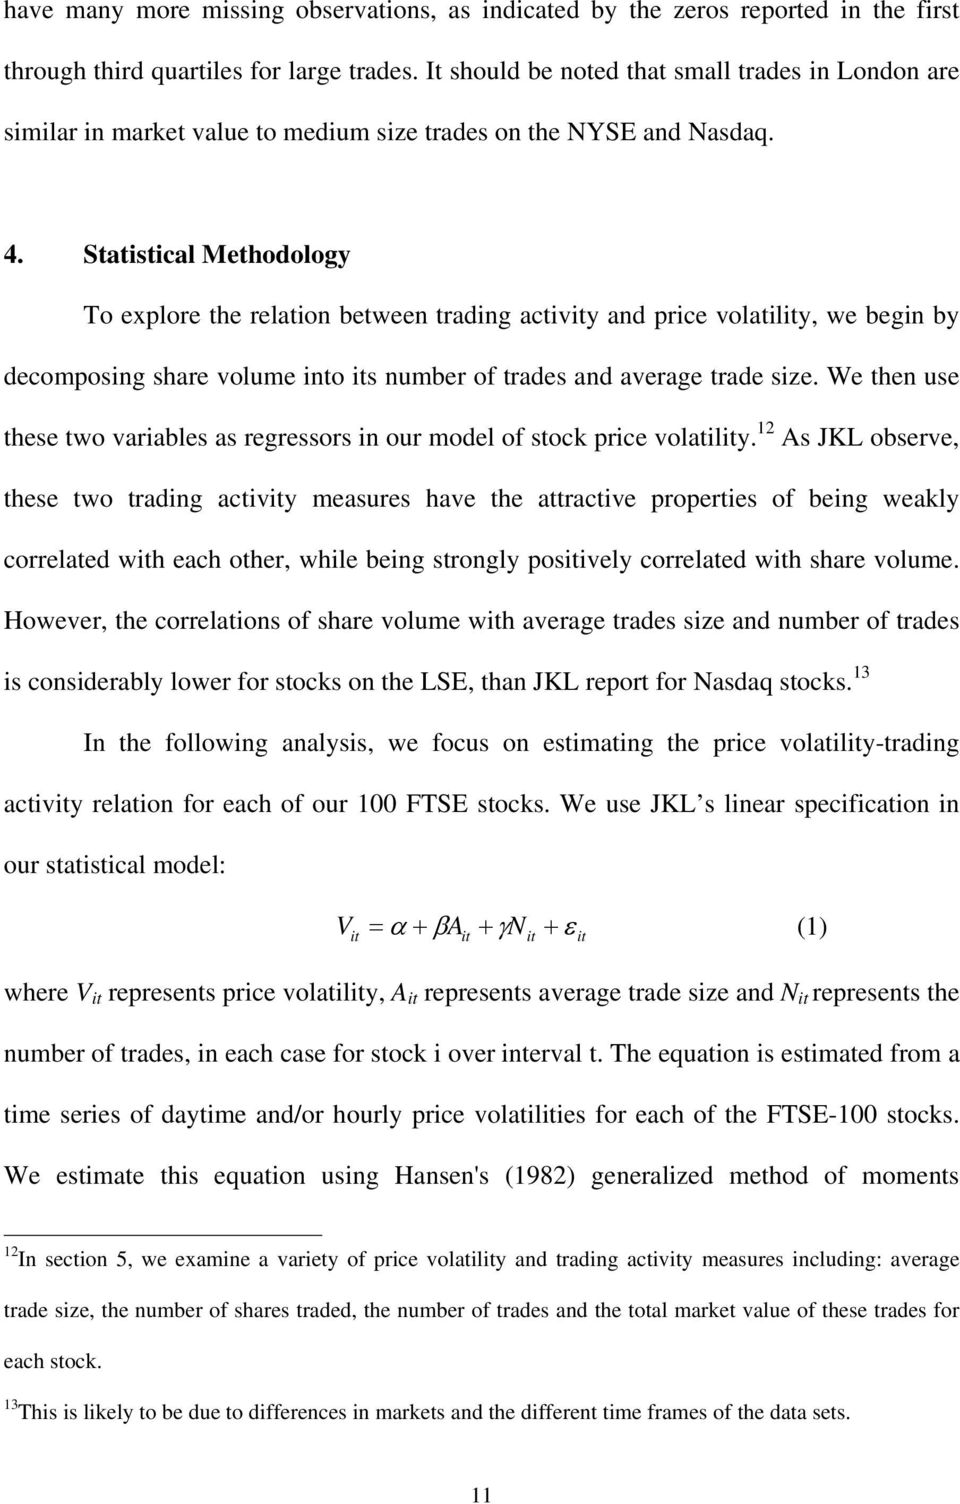 Statistical Methodology To explore the relation between trading activity and price volatility, we begin by decomposing share volume into its number of trades and average trade size.